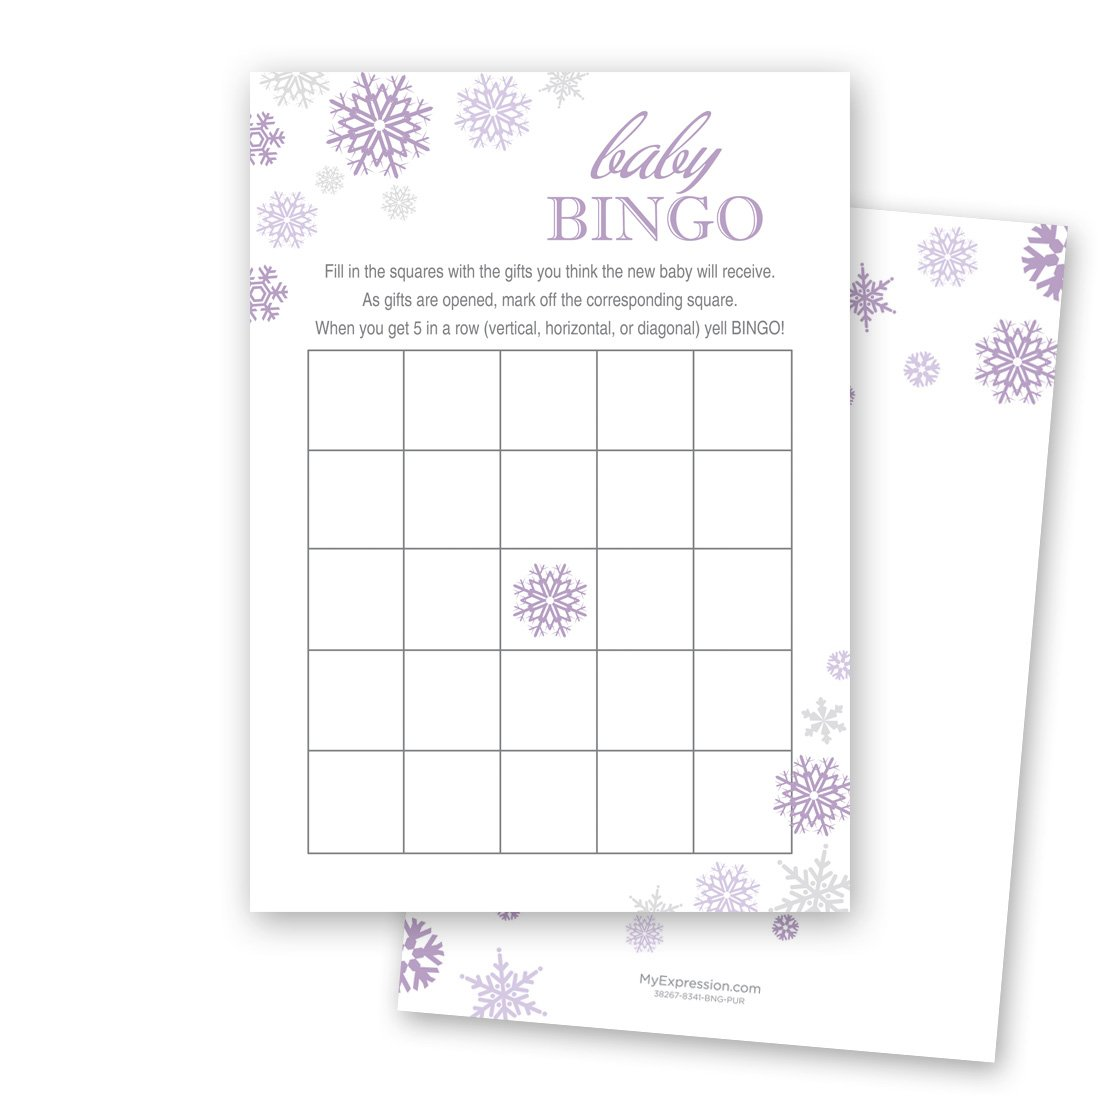 MyExpression.com 24 Cnt Purple Snowflakes Baby Shower Bingo Cards by MyExpression.com